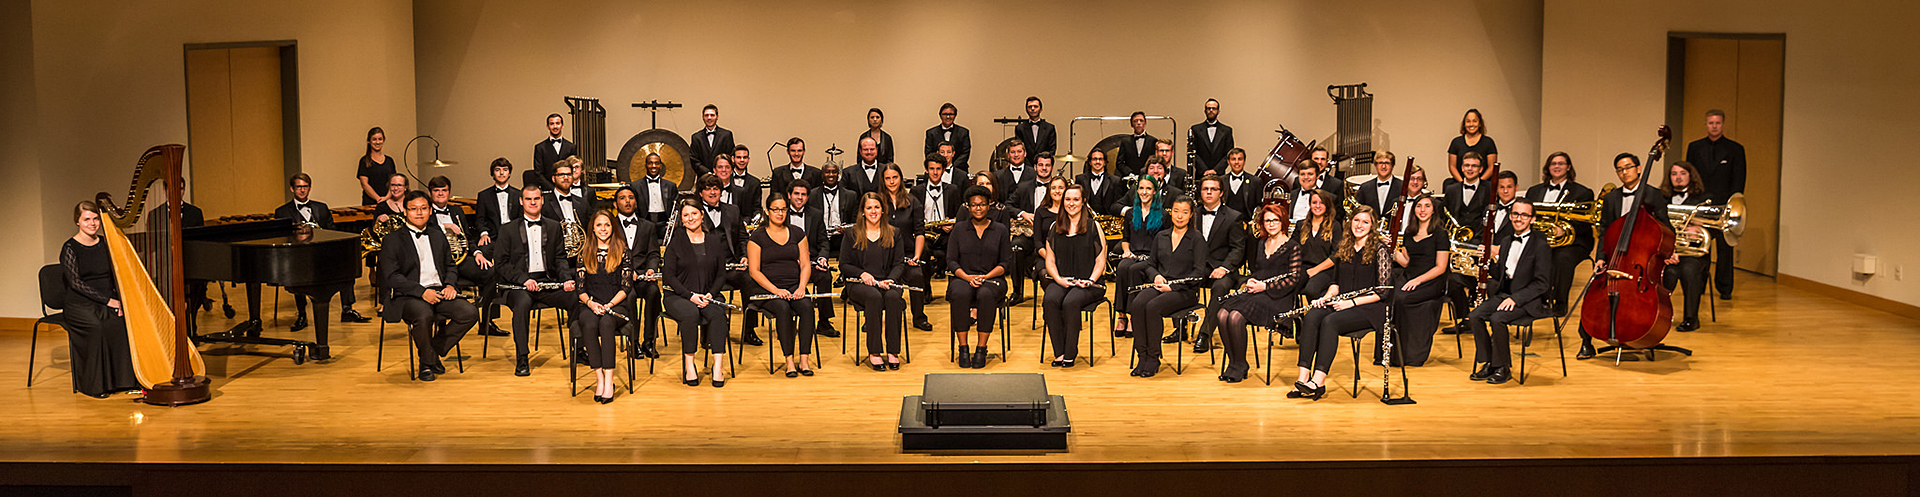 KSU School of Music Band Invitational